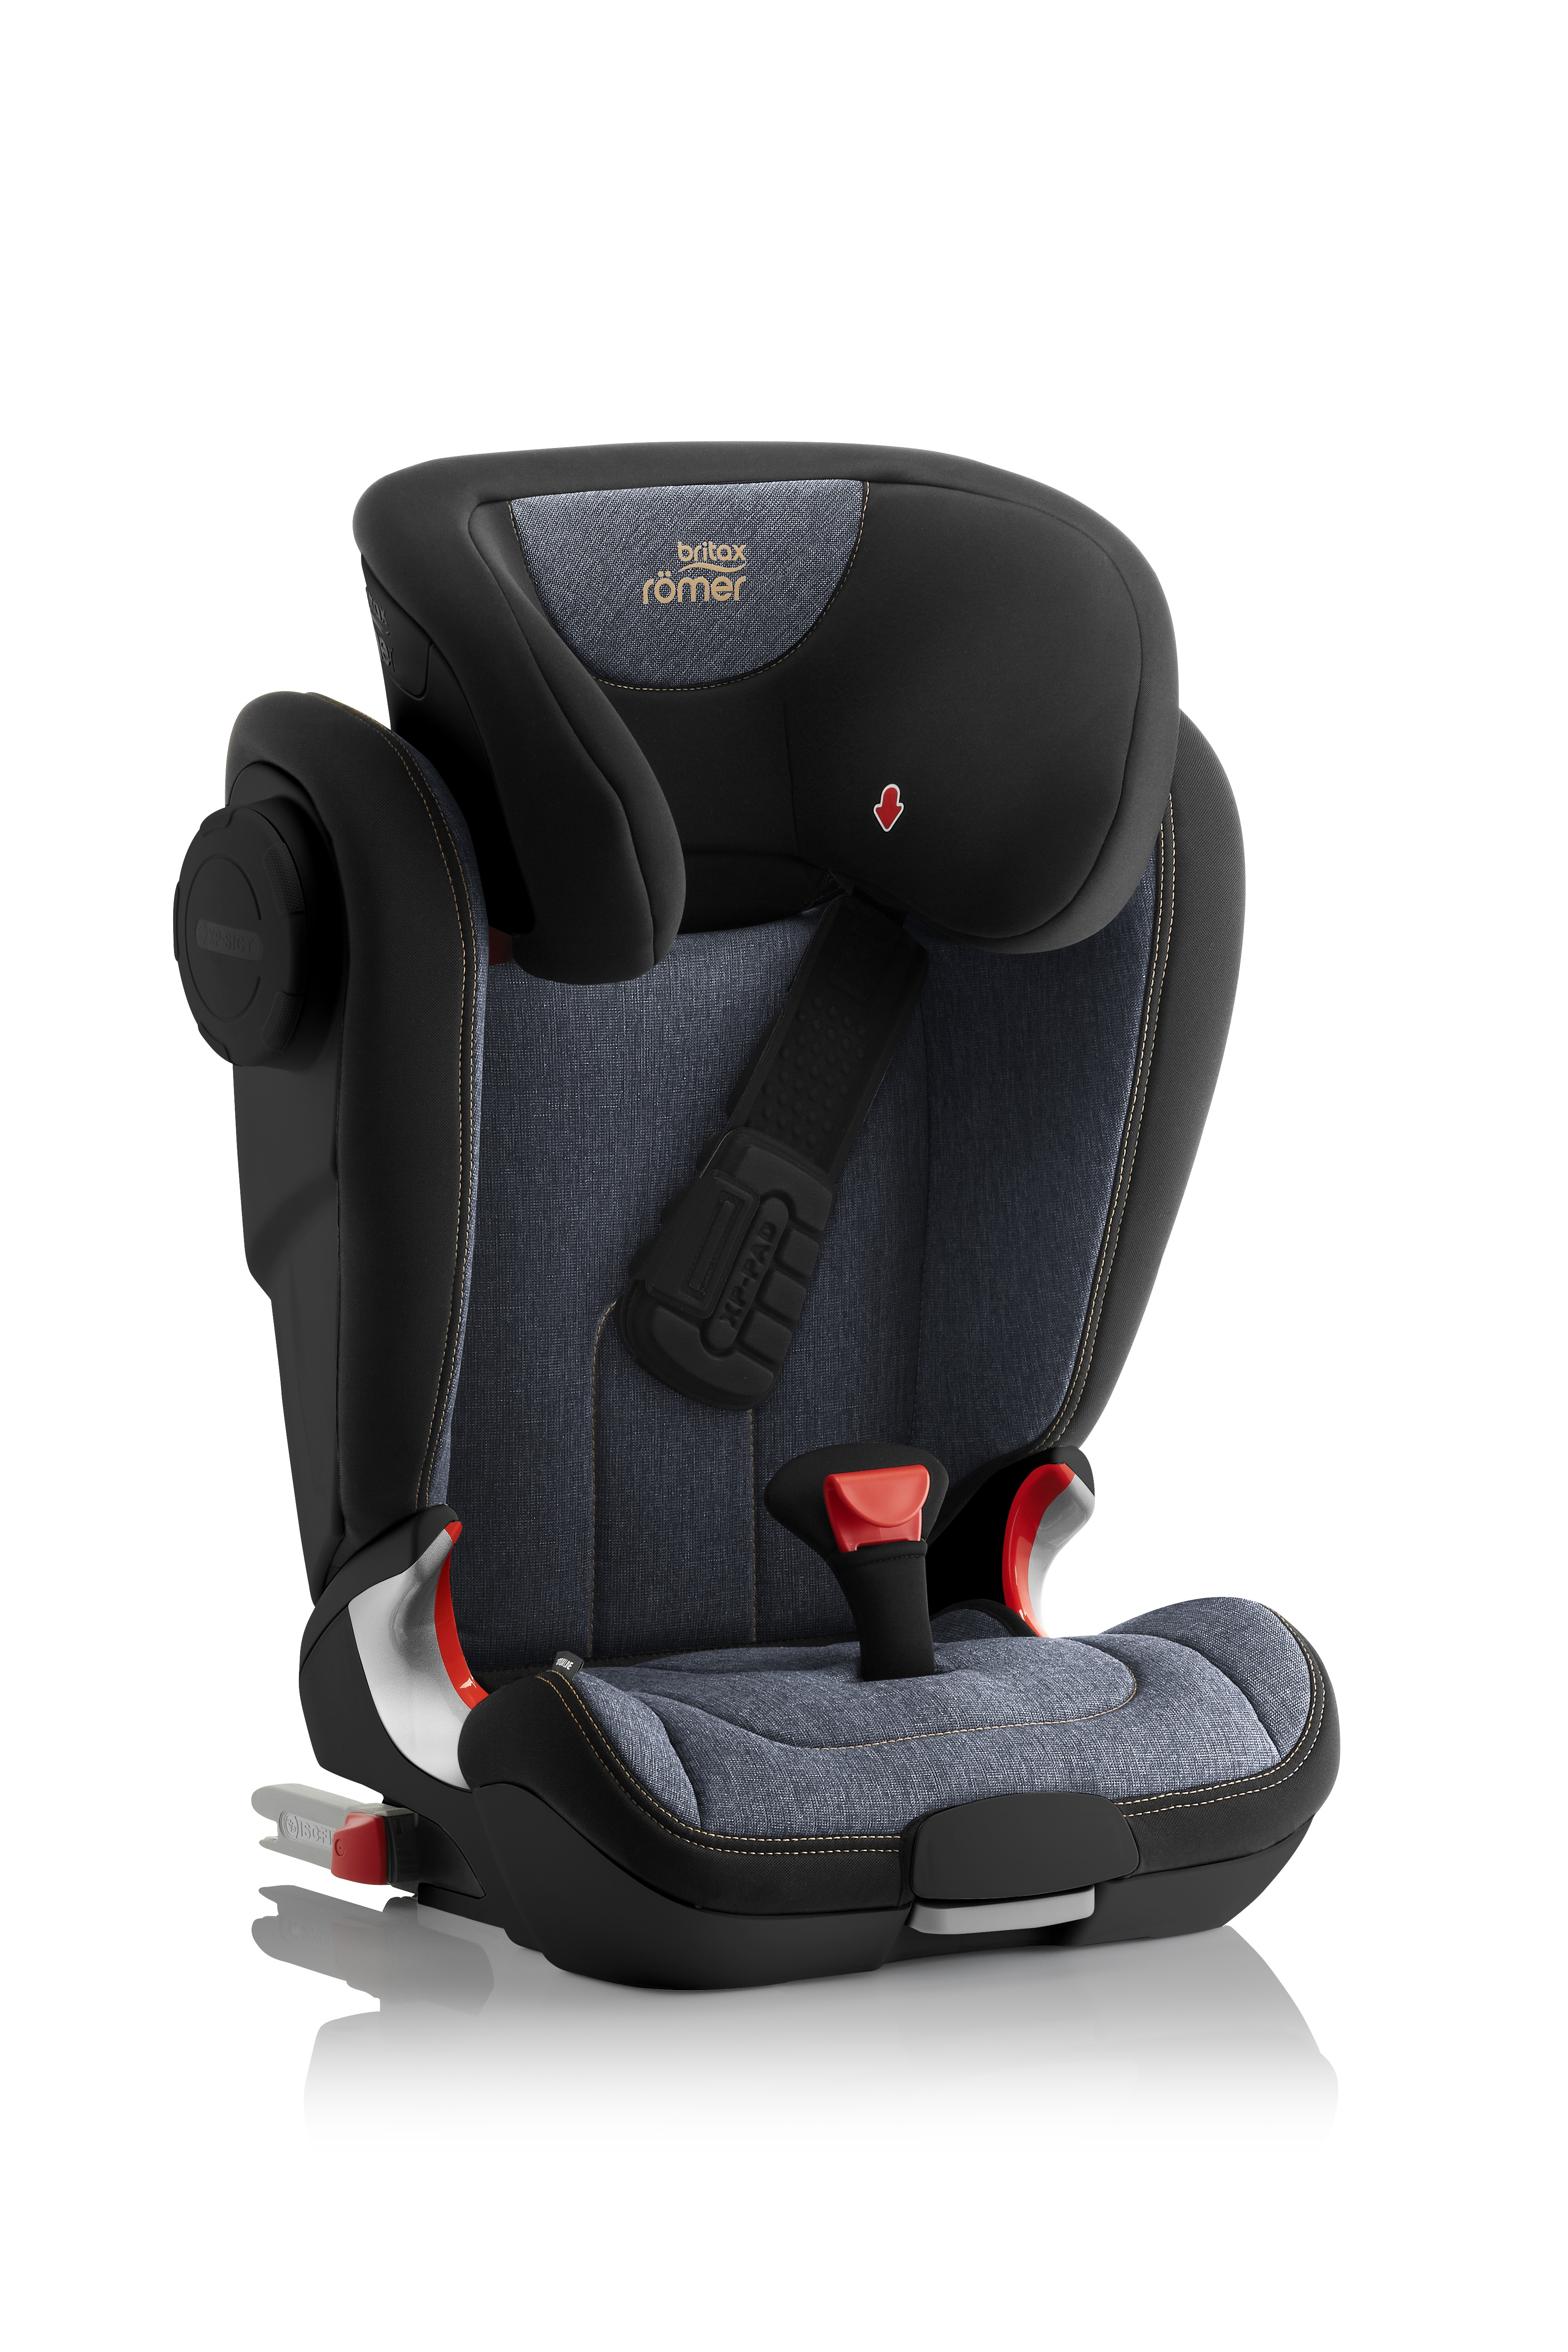 Автокресло Britax Roemer Kidfix II XP SICT Black Series Blue Marble Highline, цвет: синийBritax R?mer <br>Автокресло Britax Roemer Kidfix II XP SICT Black Series Blue Marble Highline, цвет: синий